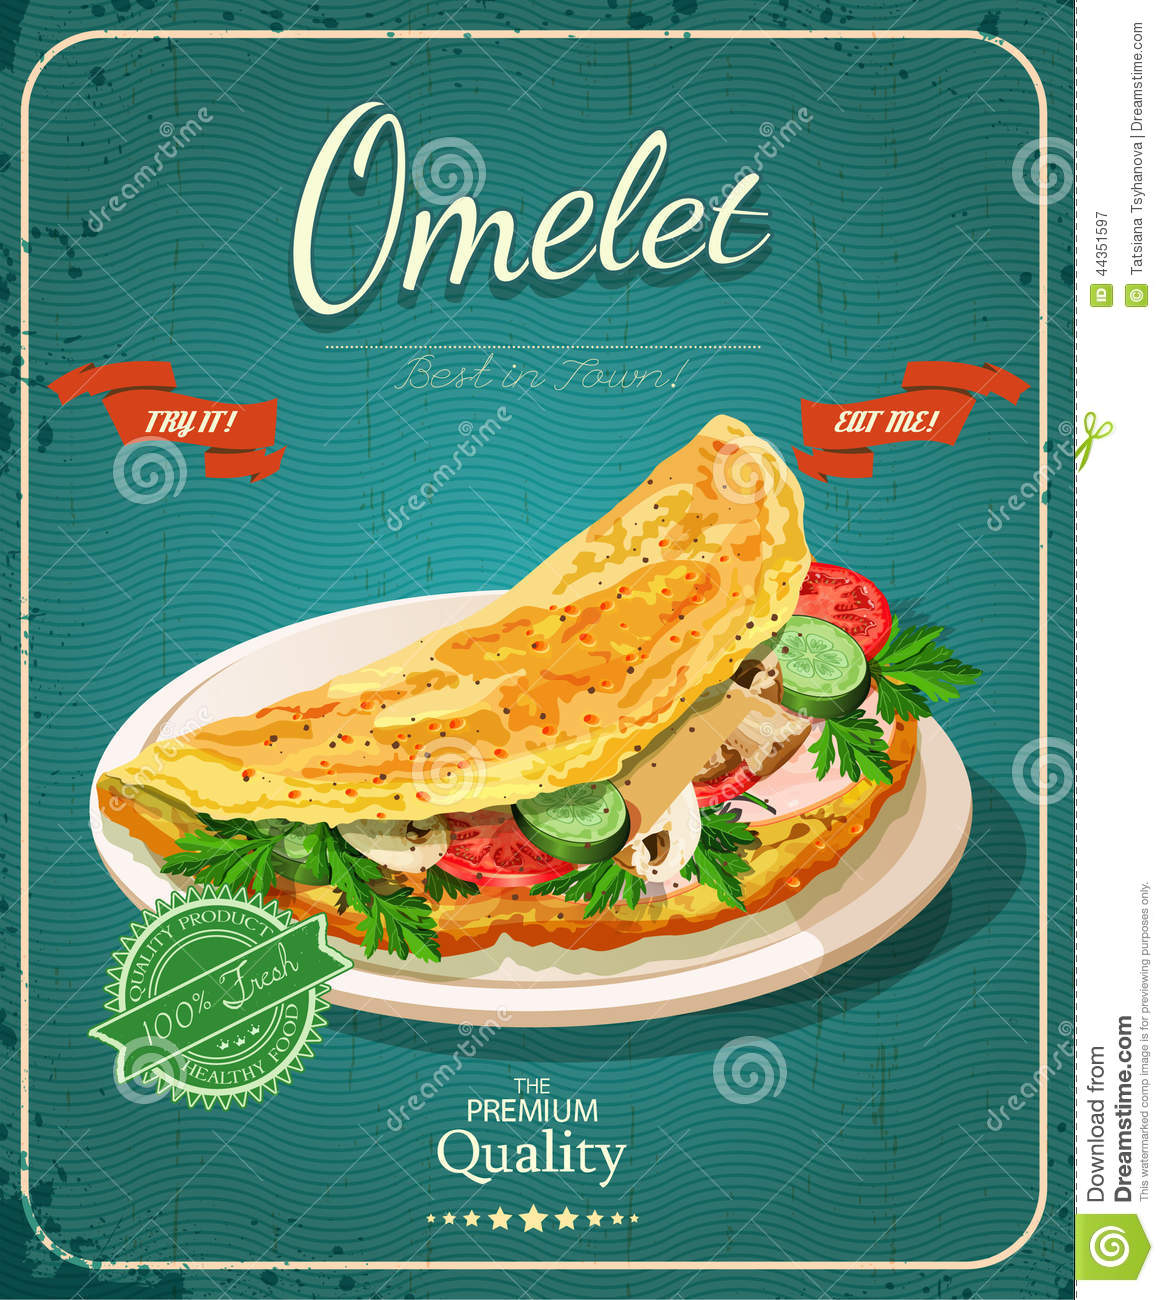 how to make an omelette with milk